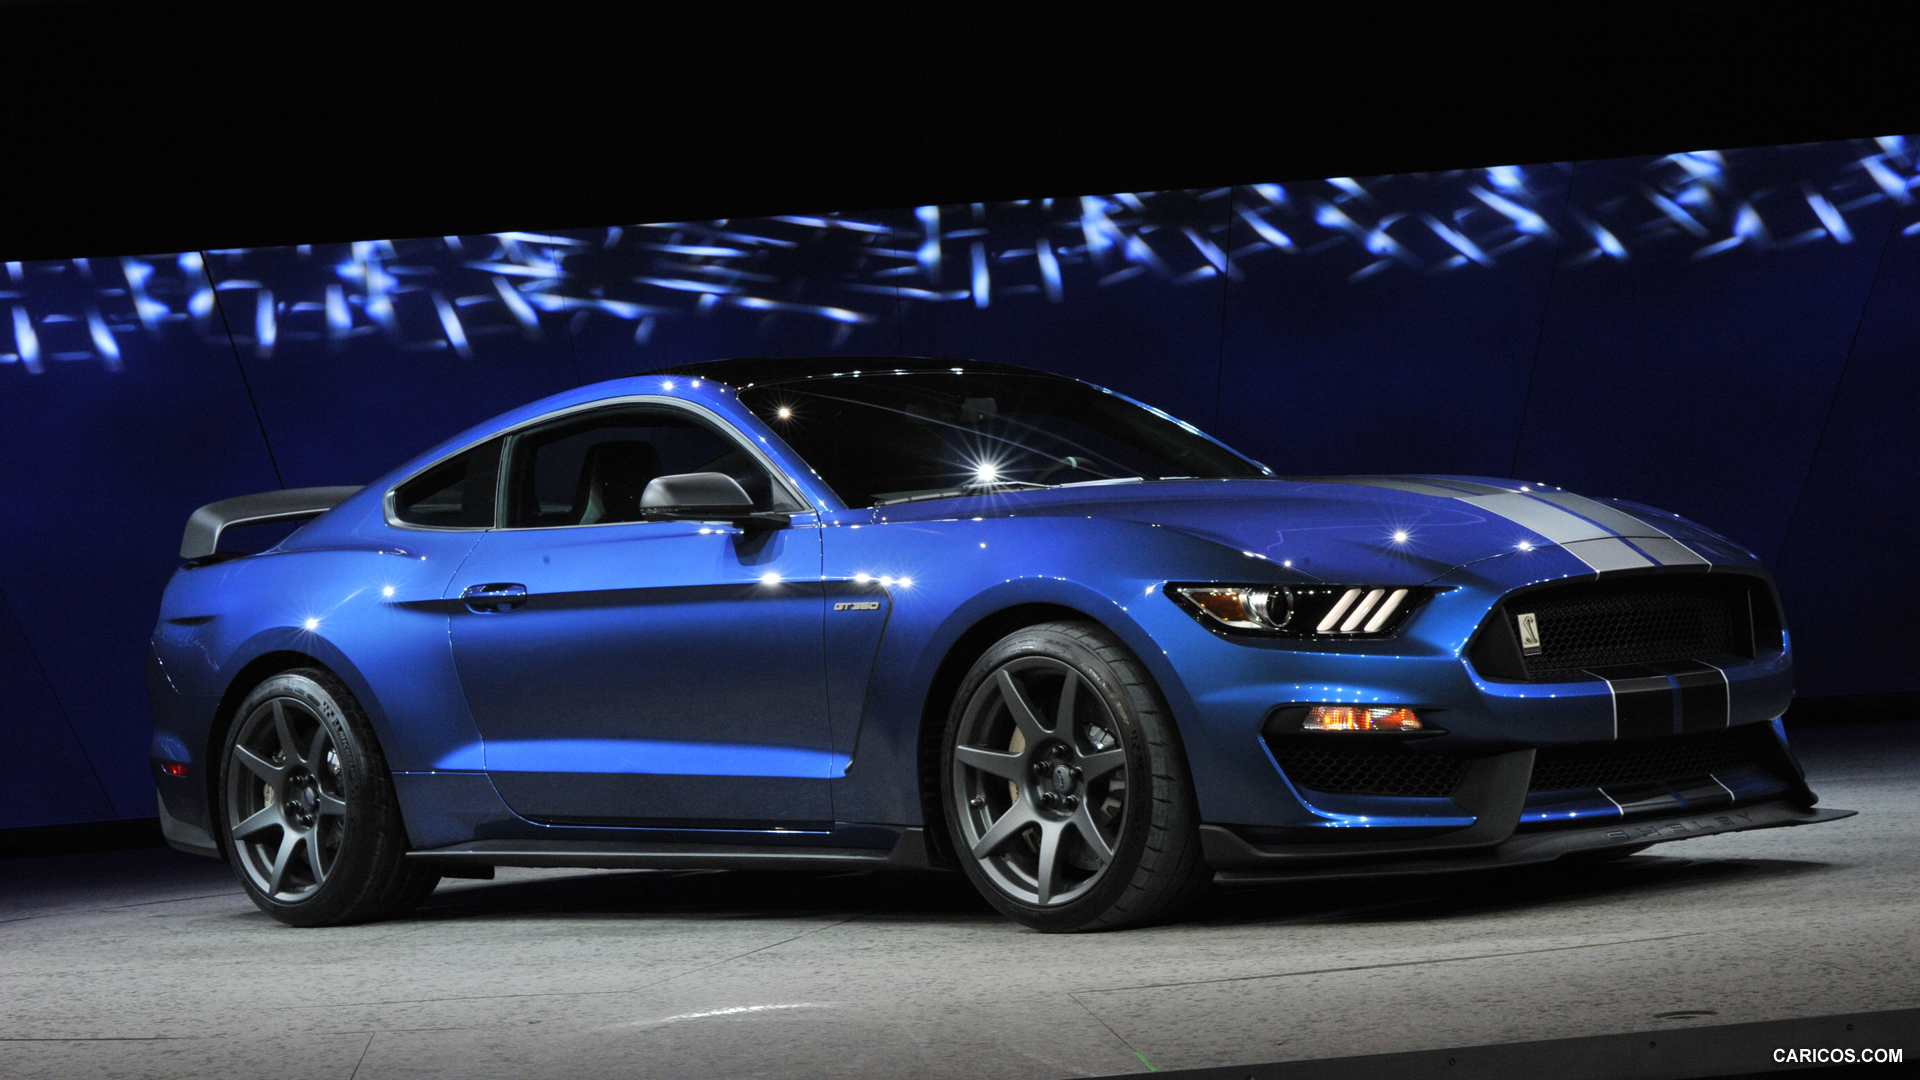 Ford Mustang Shelby GT350R photo 135655